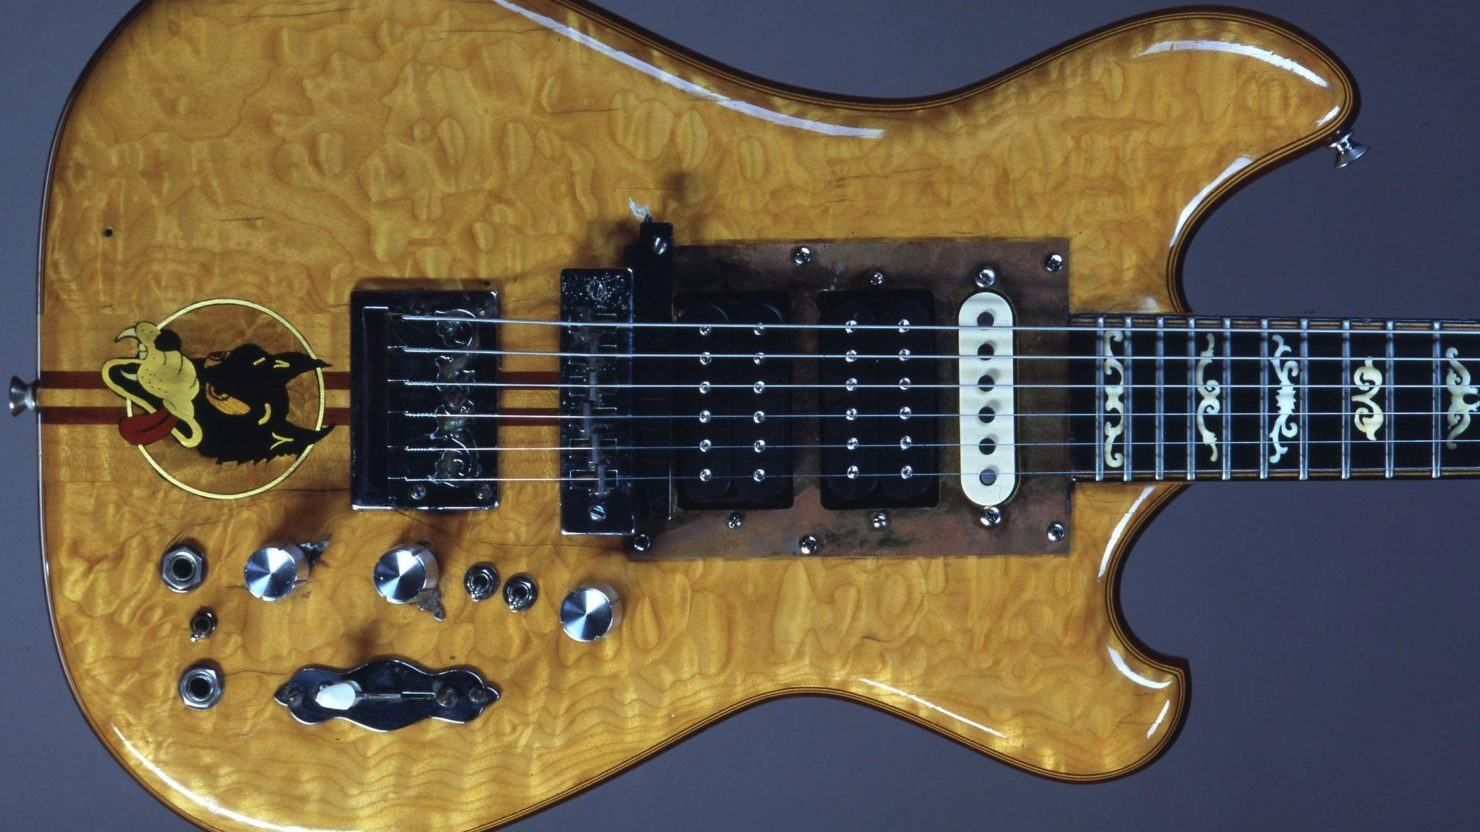 [UPDATED] Iconic Jerry Garcia Wolf Guitar To Be Auctioned ...